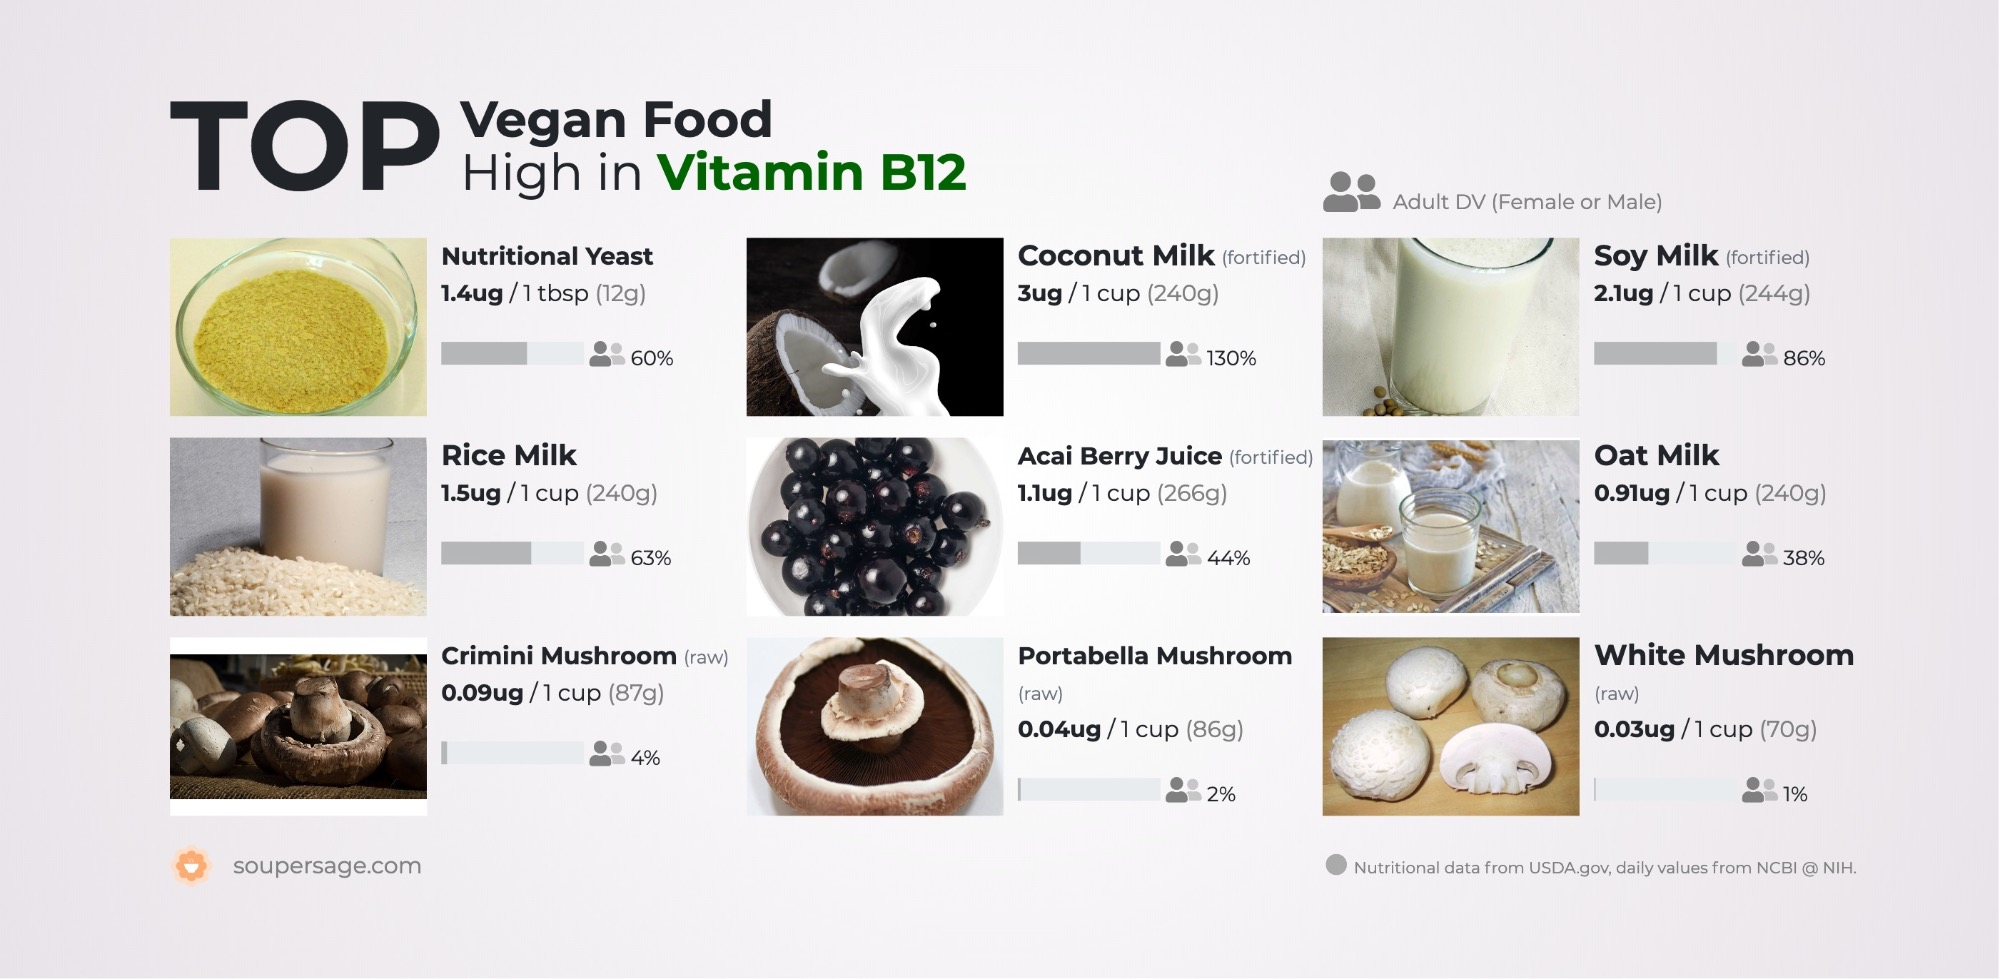 image of Top Vegan Food High in Vitamin B12